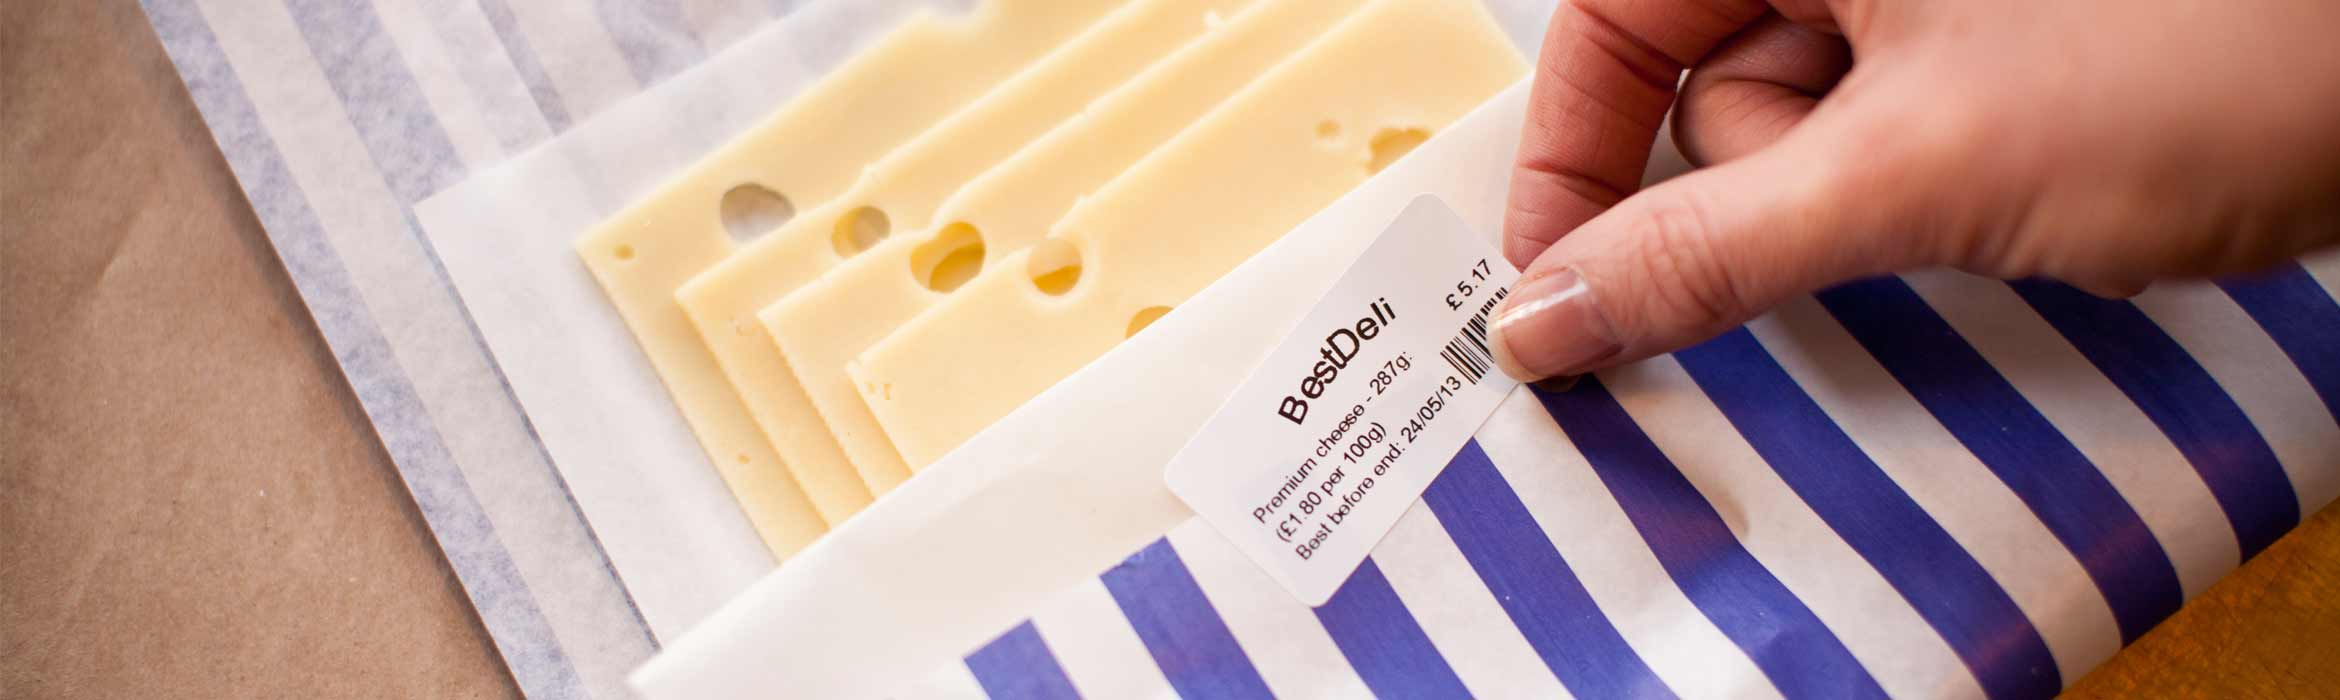 Labelling a pack of cheese